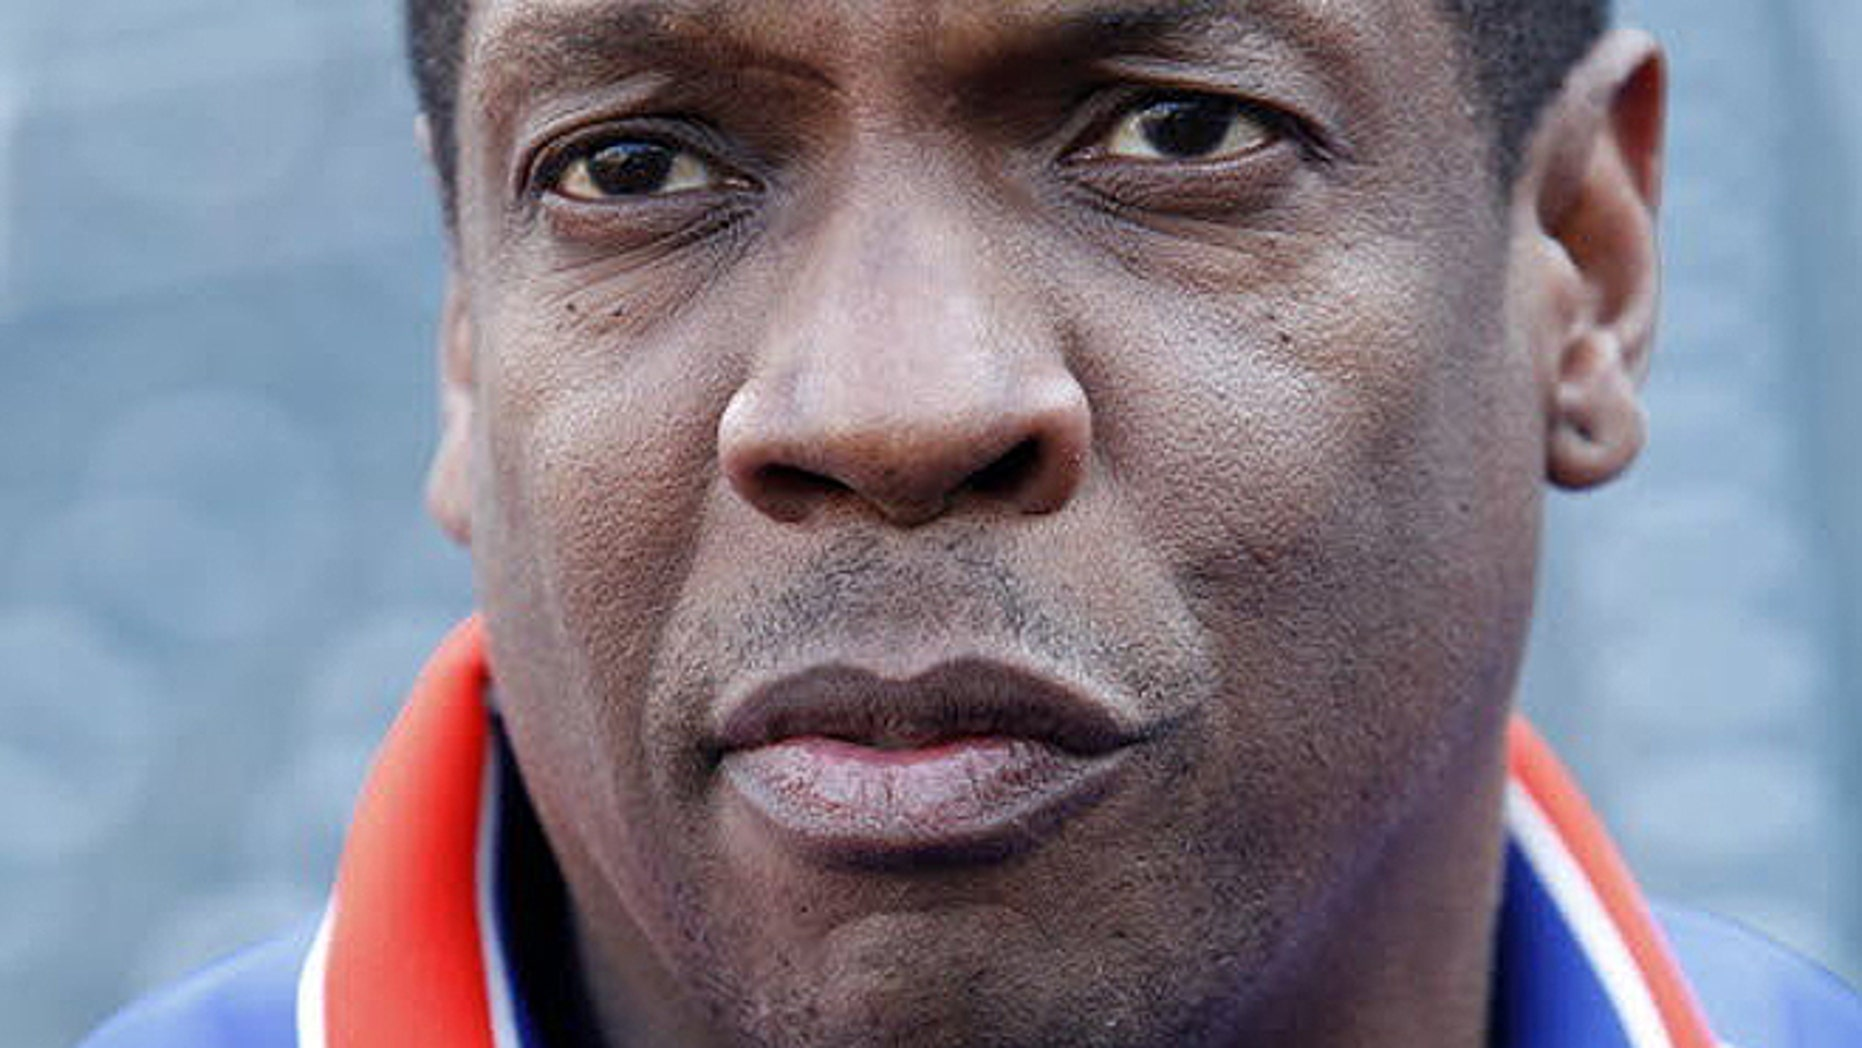 Former Major League Baseball pitcher Dwight Gooden, seen here in 2010, has reportedly been evicted from a New Jersey mansion after not paying rent for months. (AP)